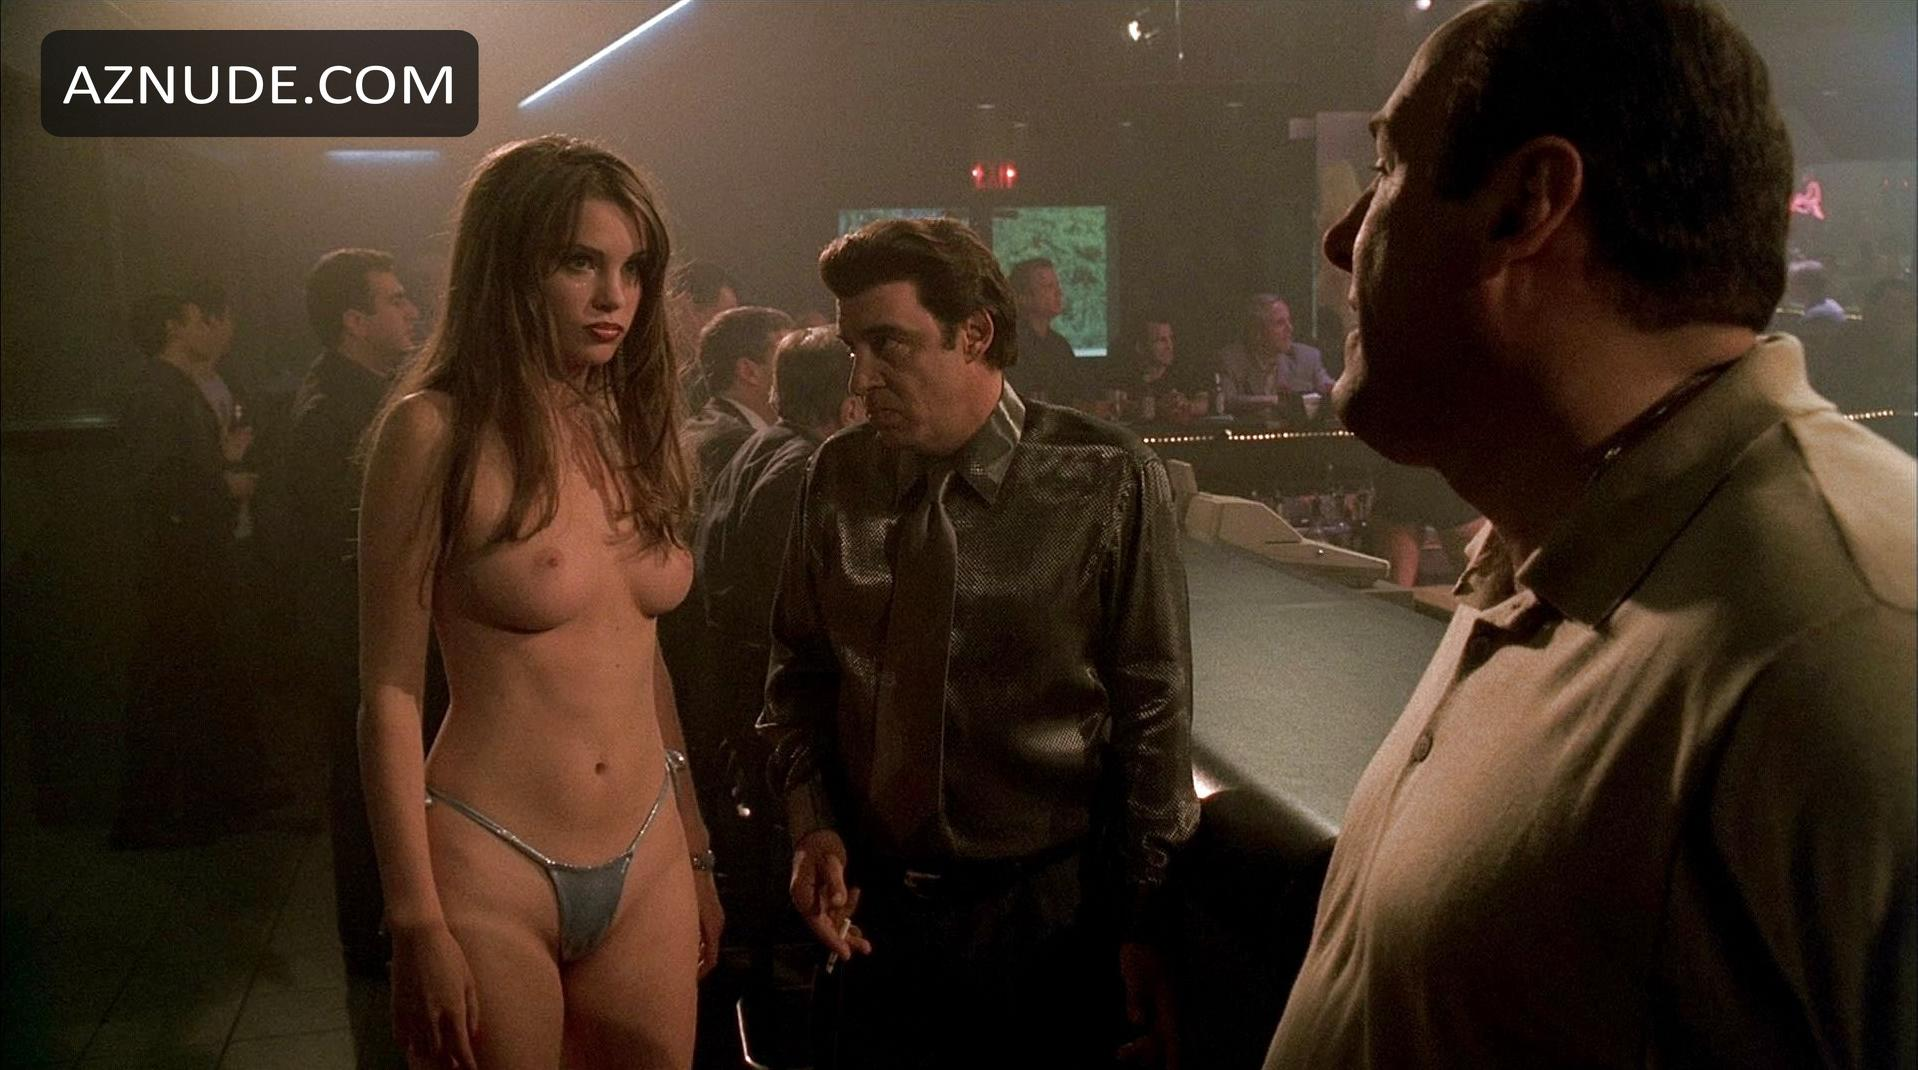 Ariel kiley in sopranos 6